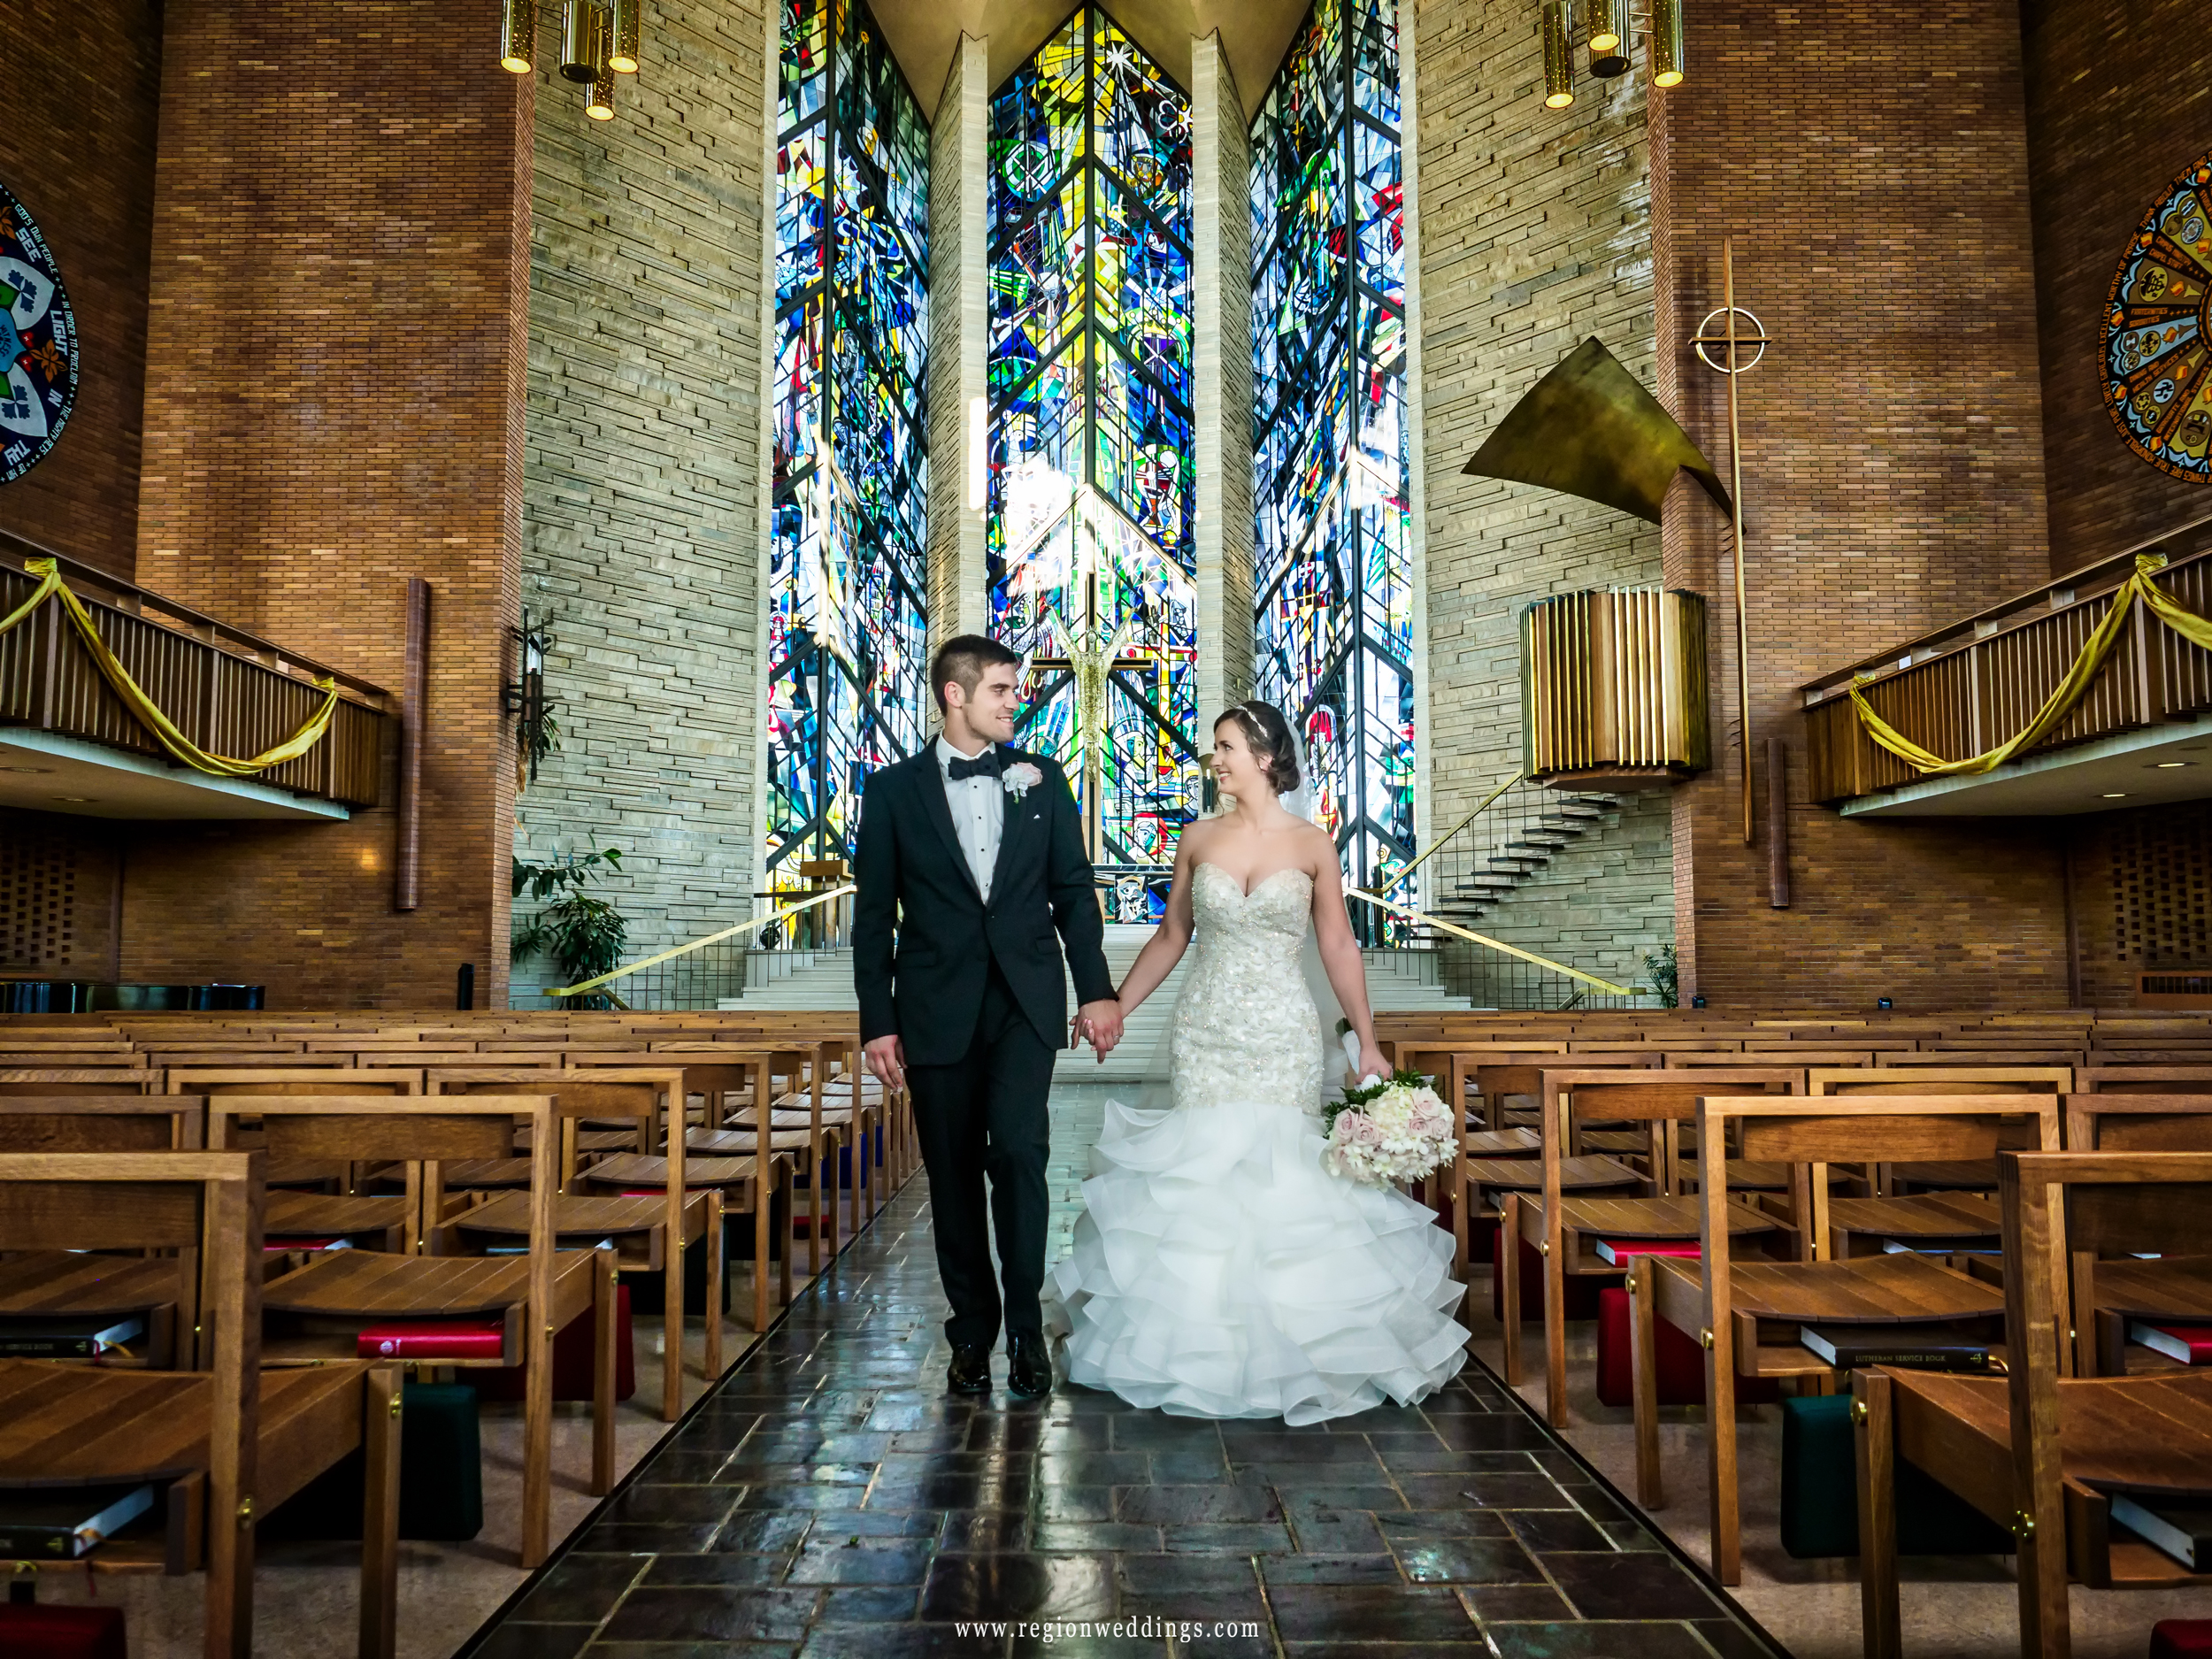 Bride and groom walk down the aisle at Chapel of the Resurrection.